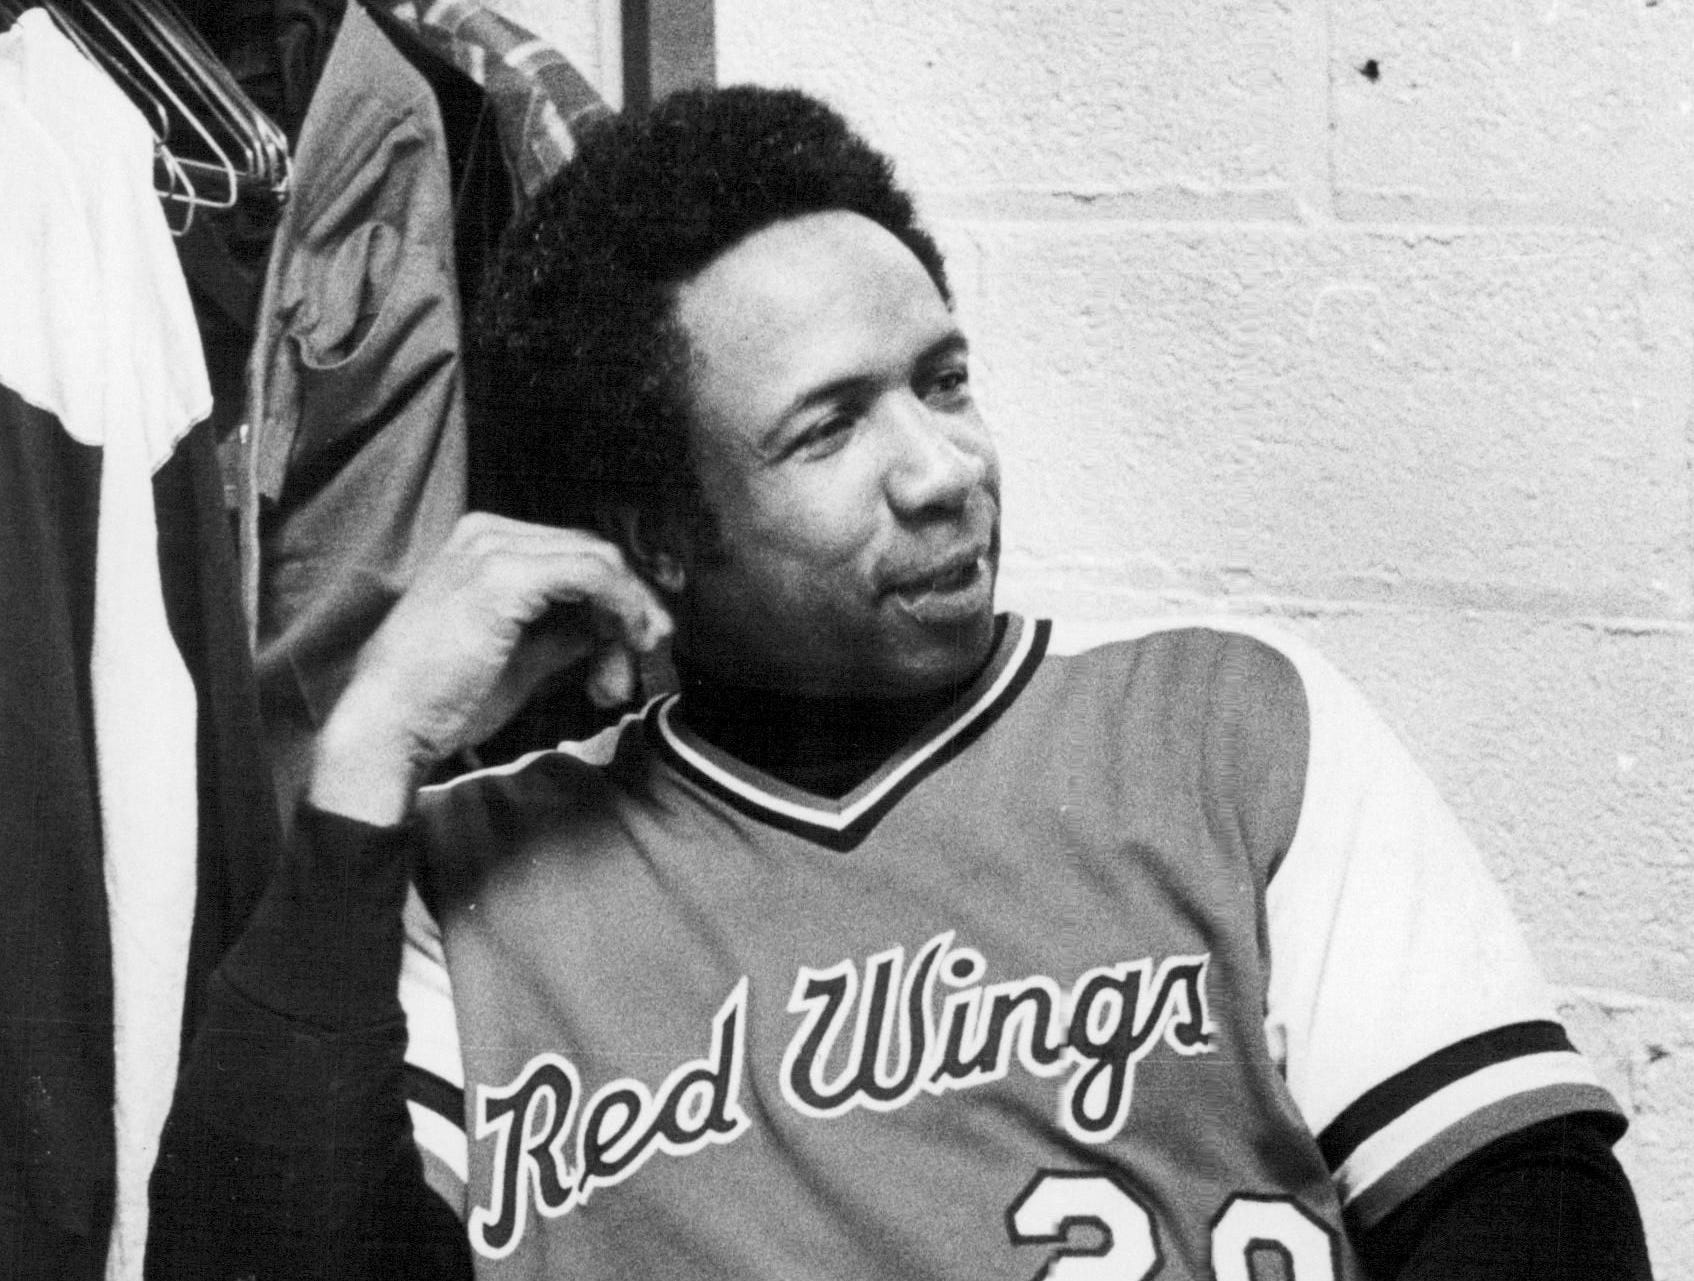 Rochester Red Wings manager Frank Robinson chats with reporters after a game in 1978.